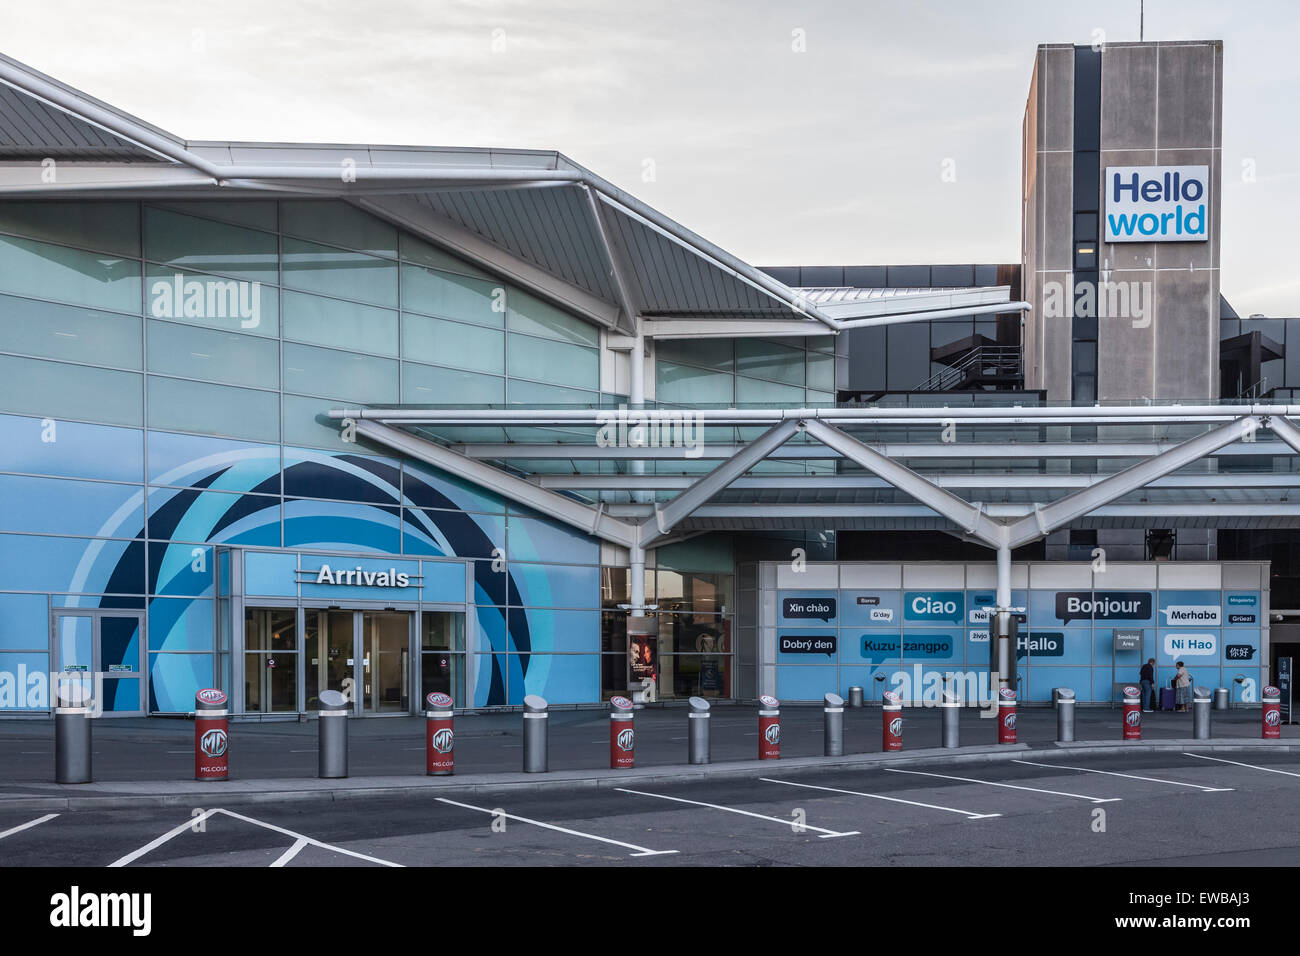 Birmingham Airport High Resolution Stock Photography And Images Alamy